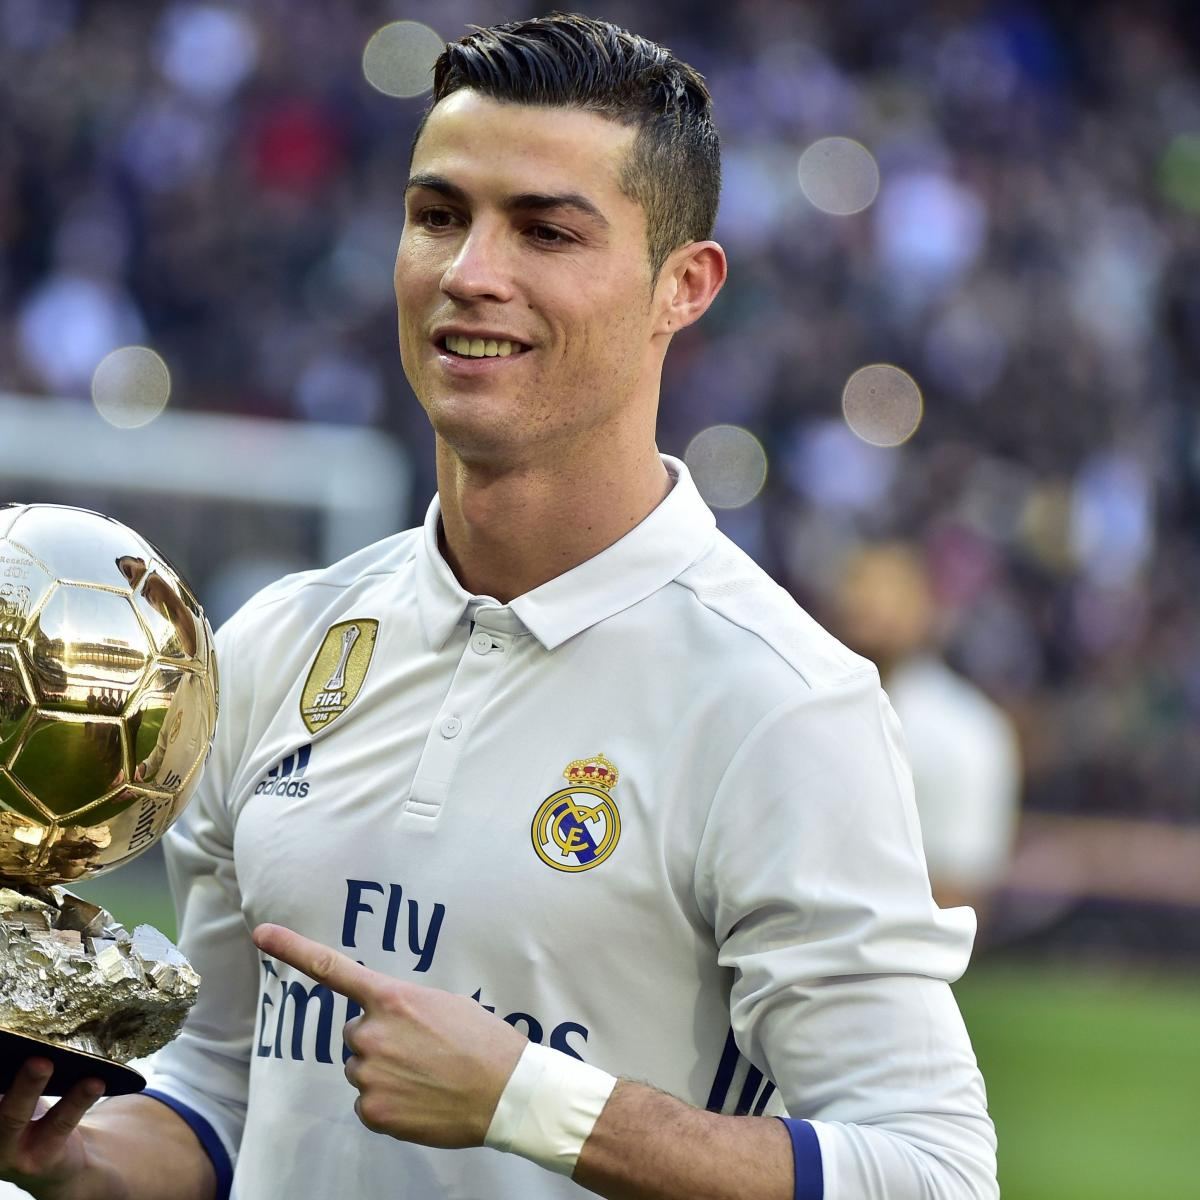 Ballon d'Or 2017: Live Stream, TV Info, Start Time, Finalists and Prediction